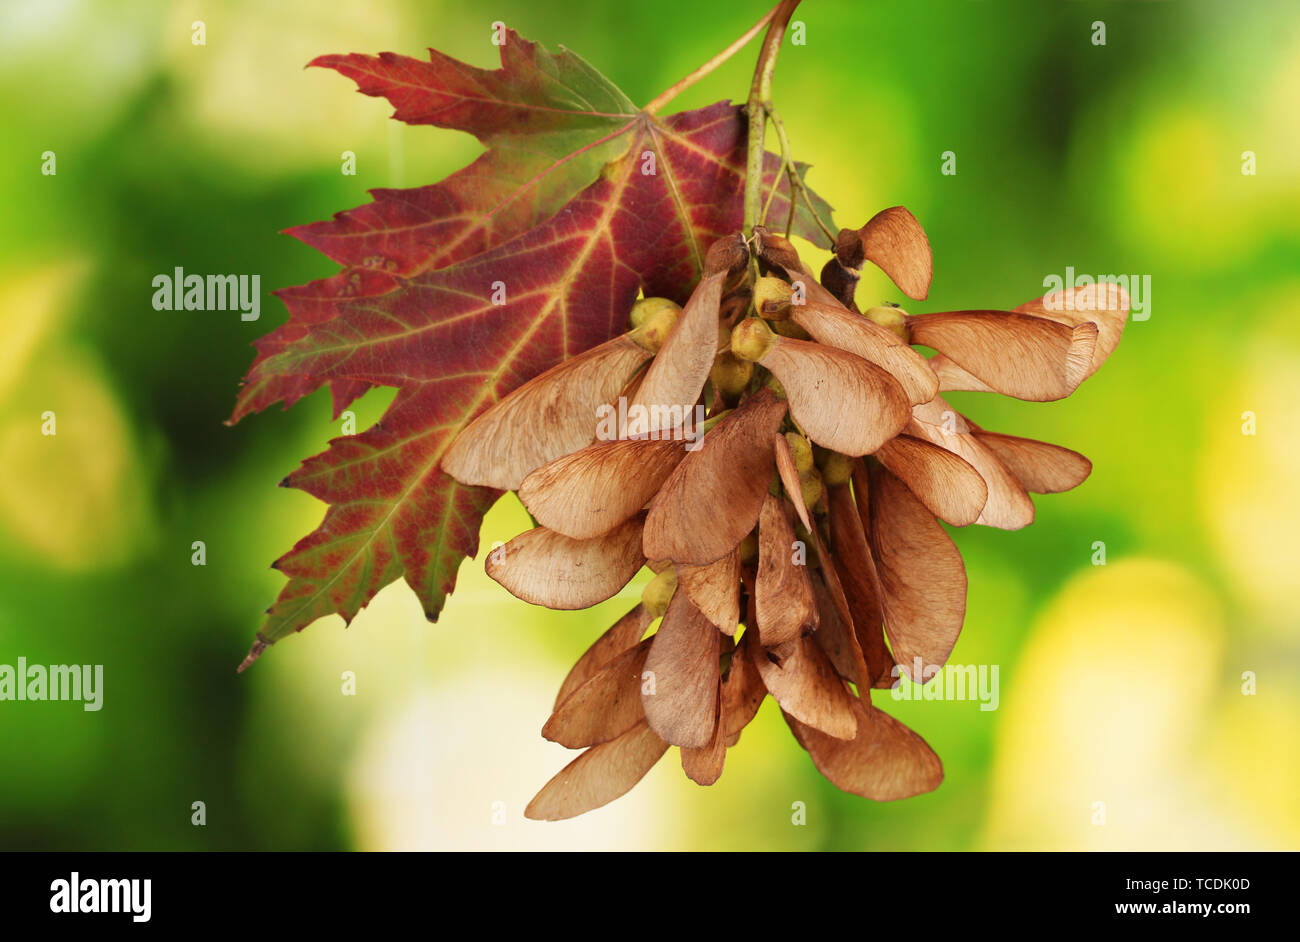 maple seed and autumn leaf on green background Stock Photo